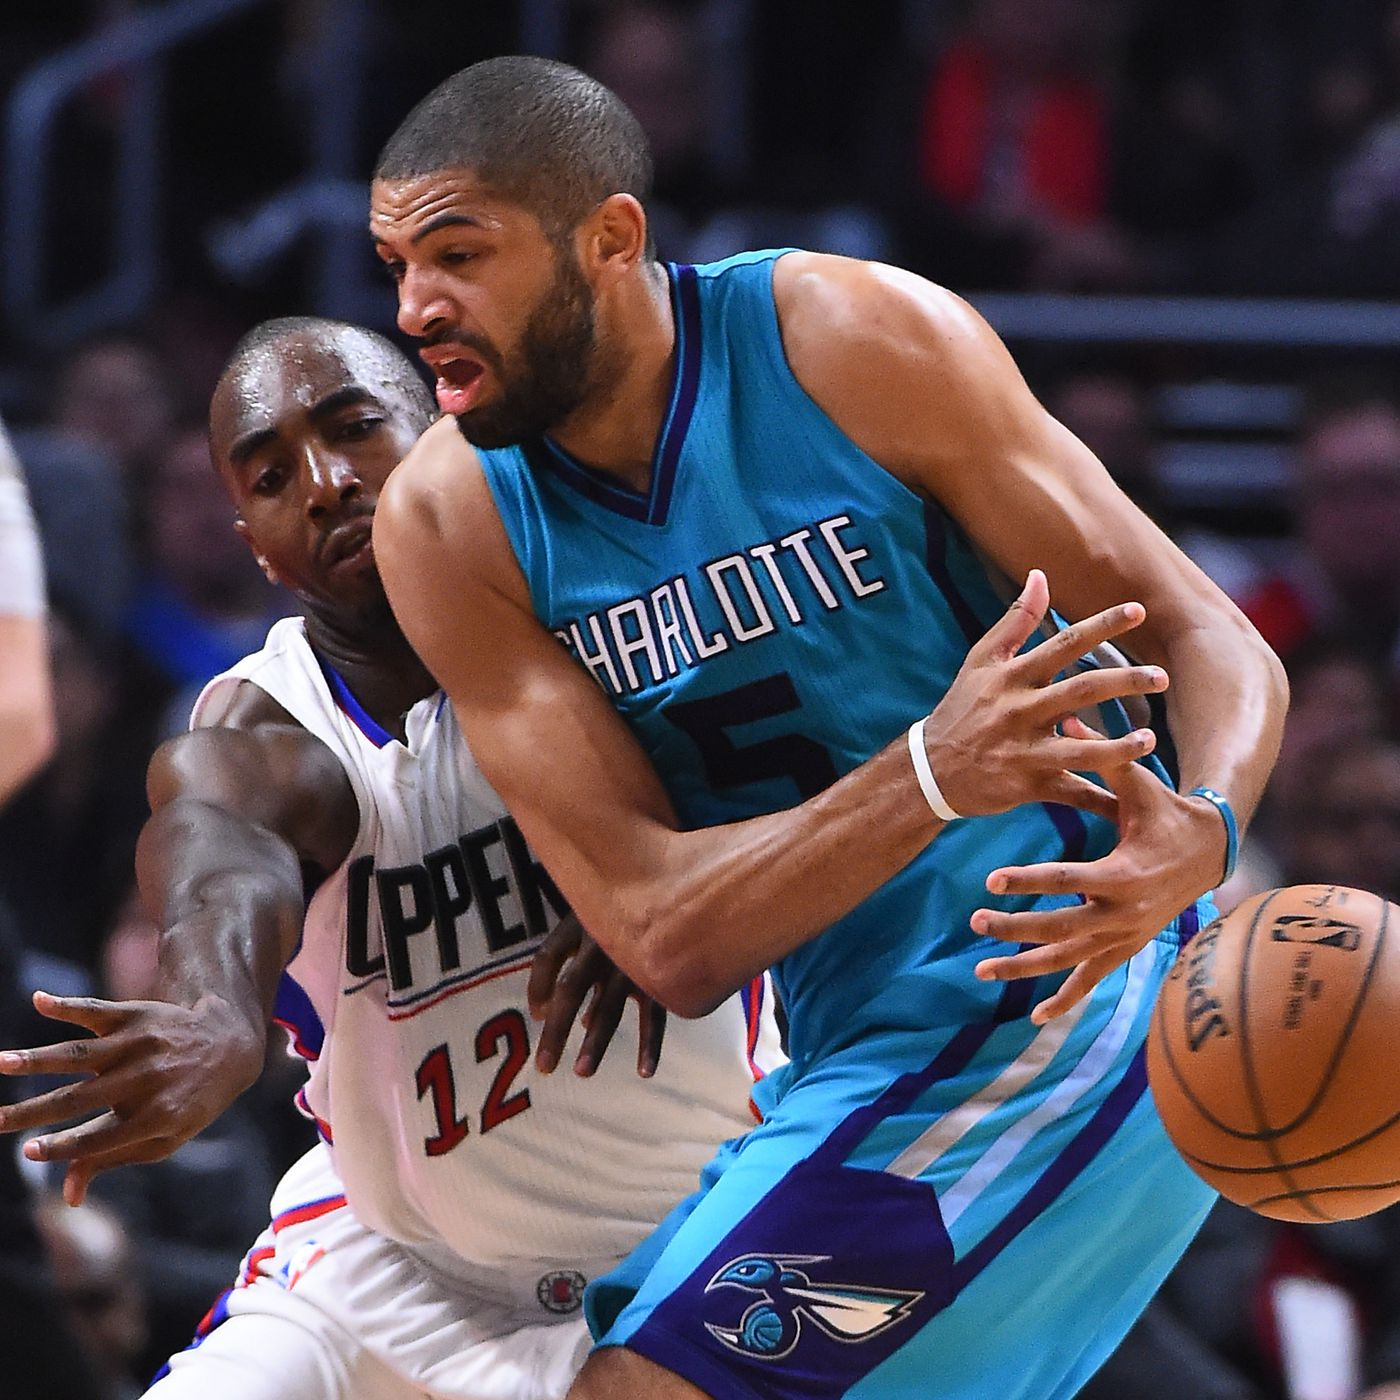 b117db10855a Clippers outlast Hornets in hero ball exhibition - At The Hive